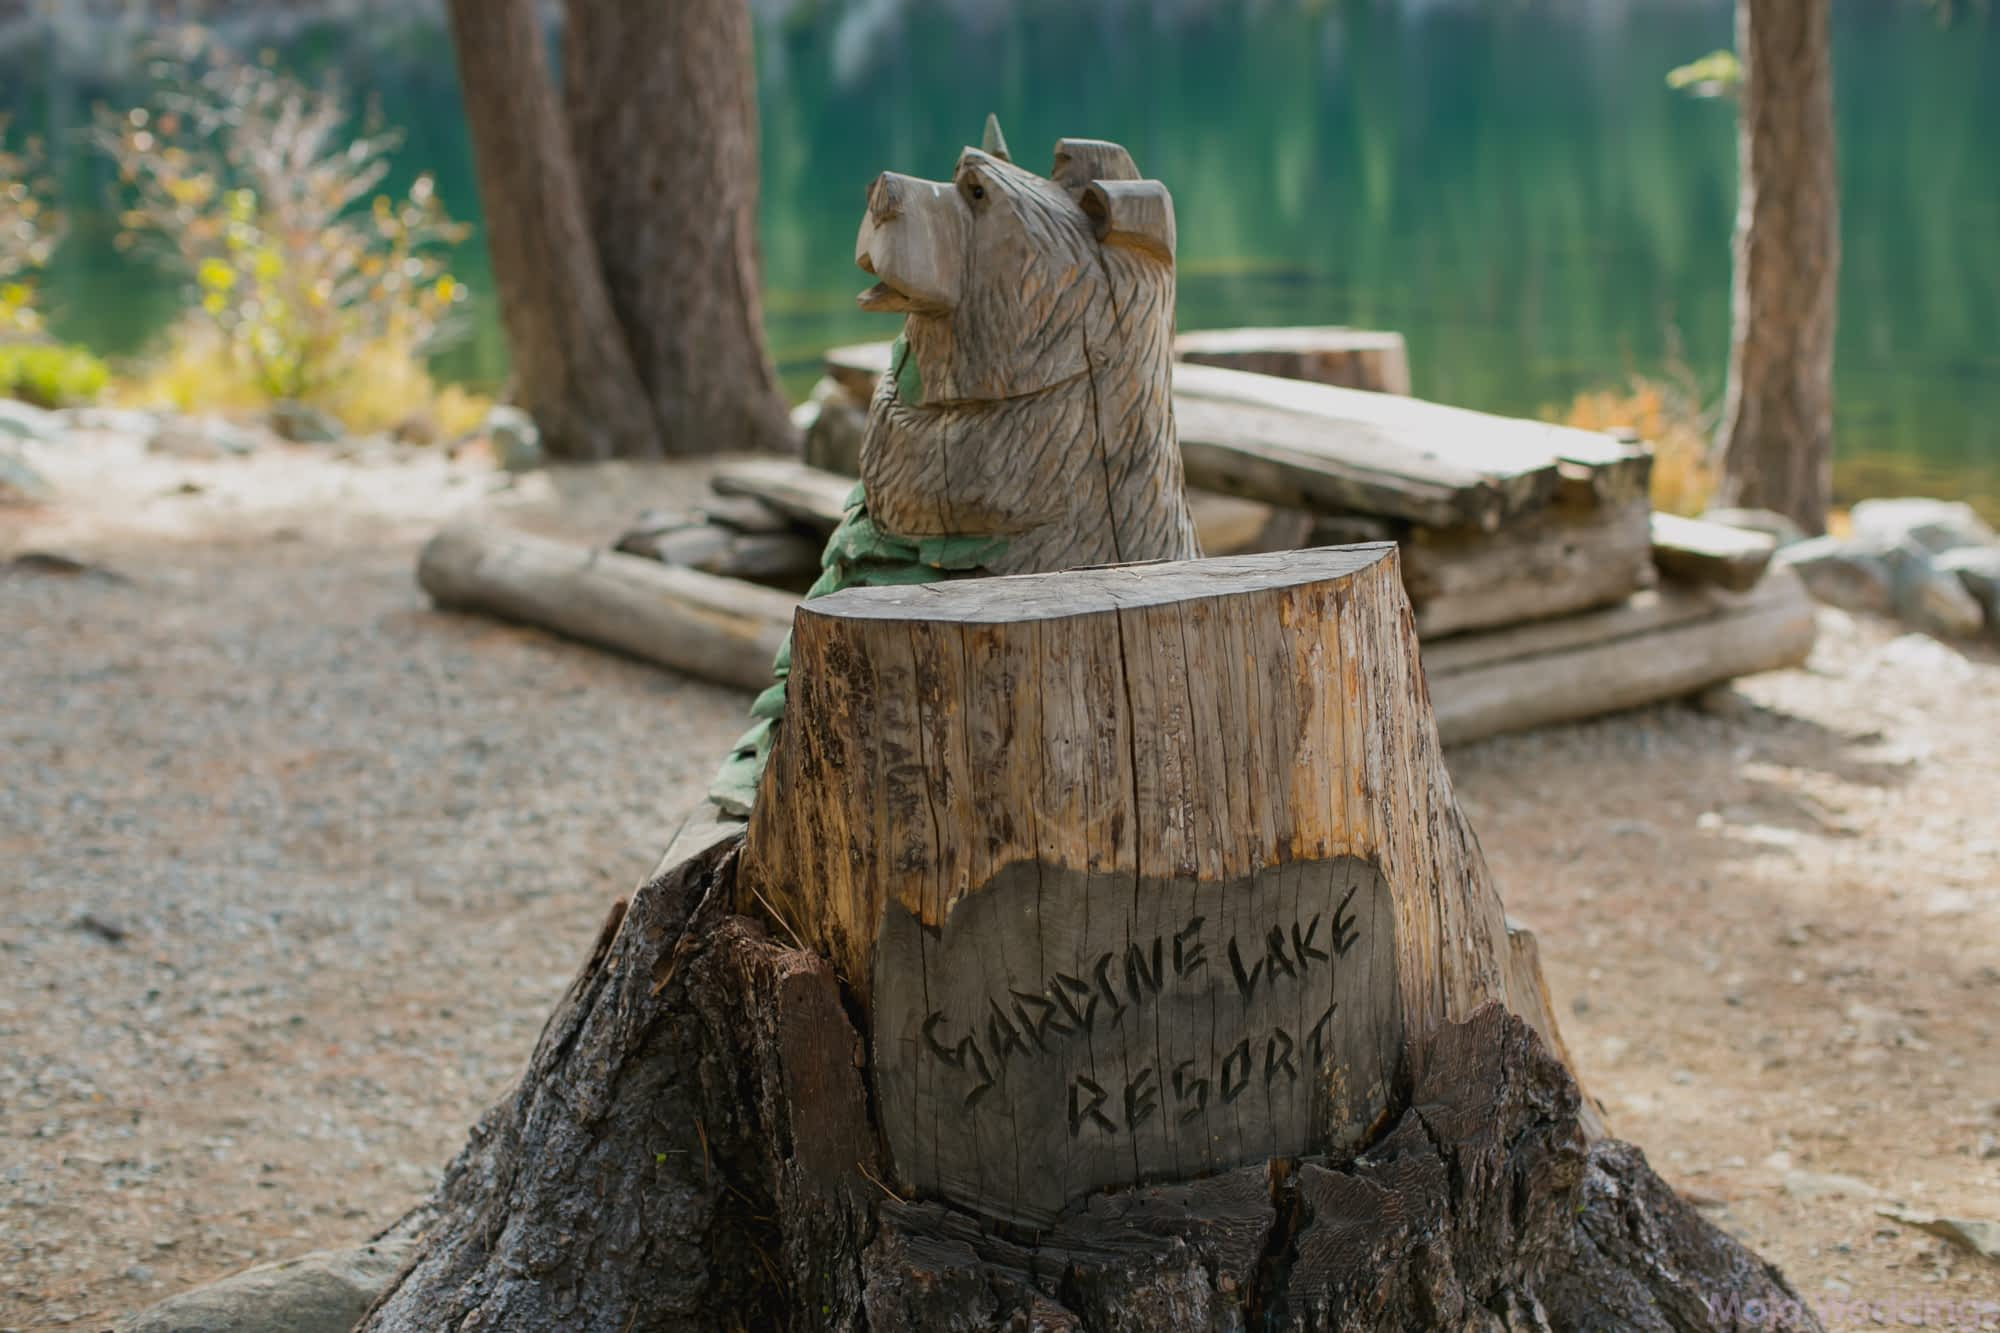 A wood carving of a bear and a sign carved in to a stump saying Sardine Lake Resort.